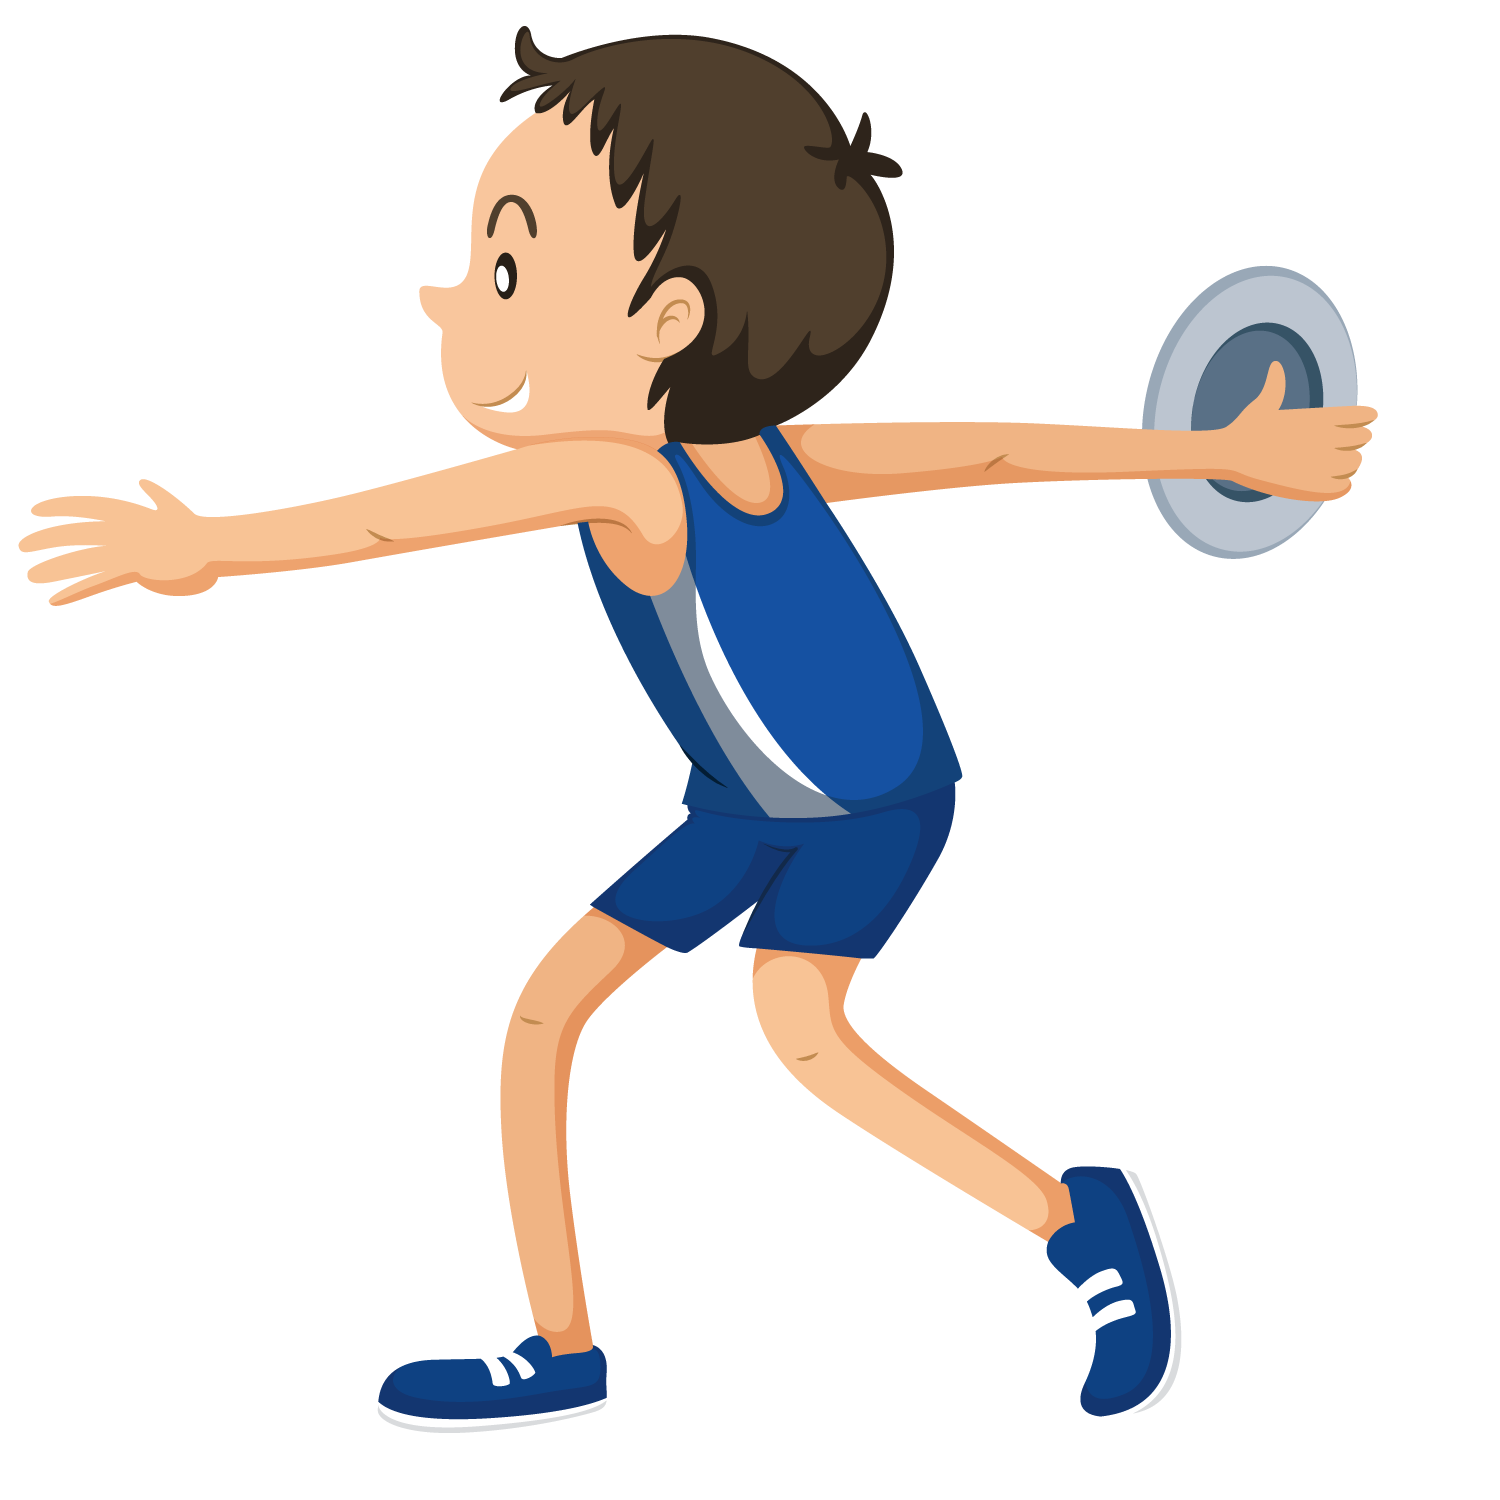 clipart royalty free download Athlete clipart. Discus throw sport clip.